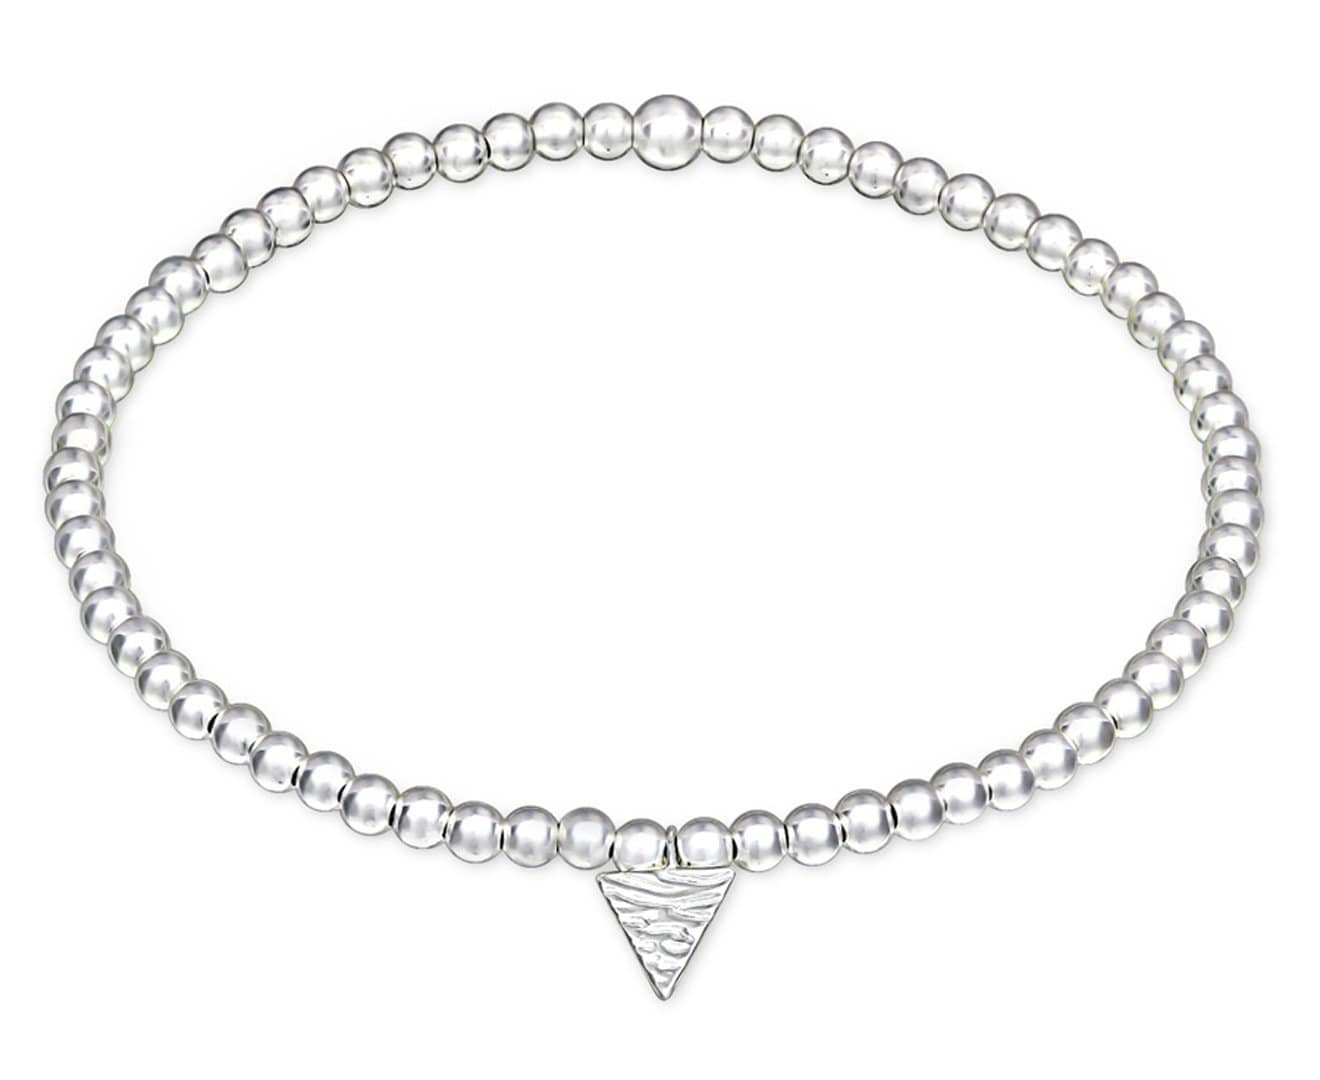 Sterling Silver Triangle Bracelet